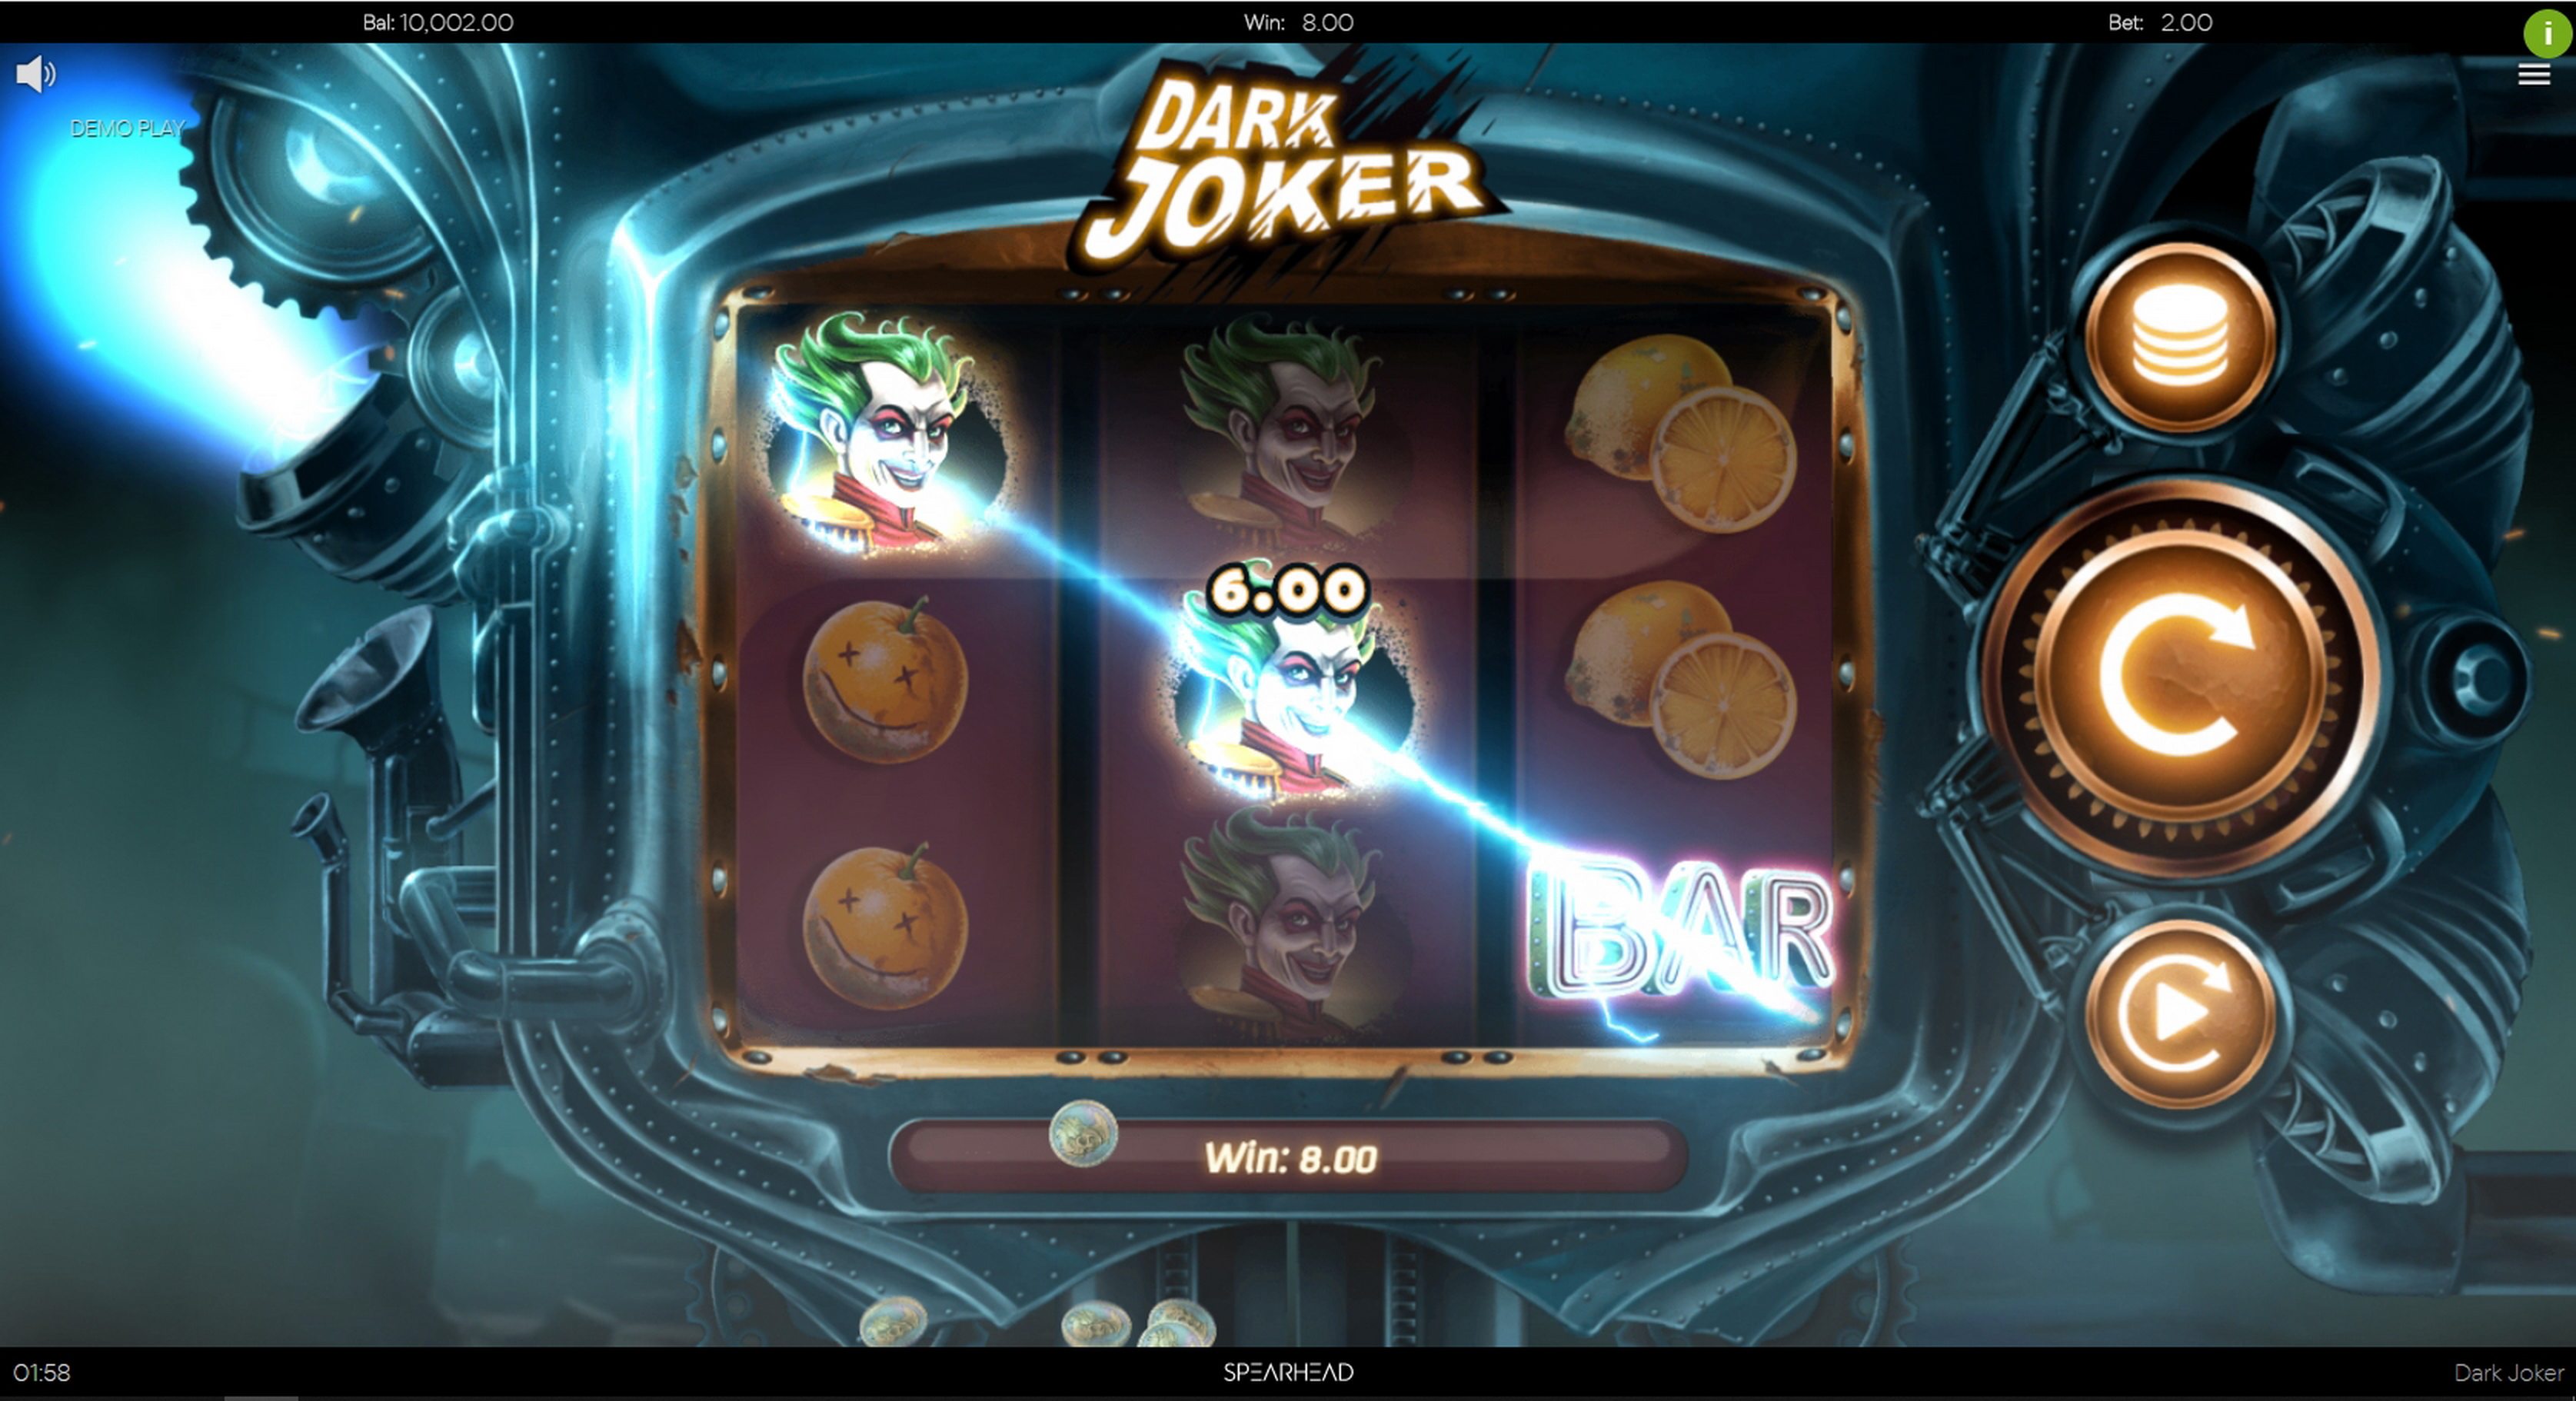 Win Money in Dark Joker (Spearhead Studios) Free Slot Game by Spearhead Studios